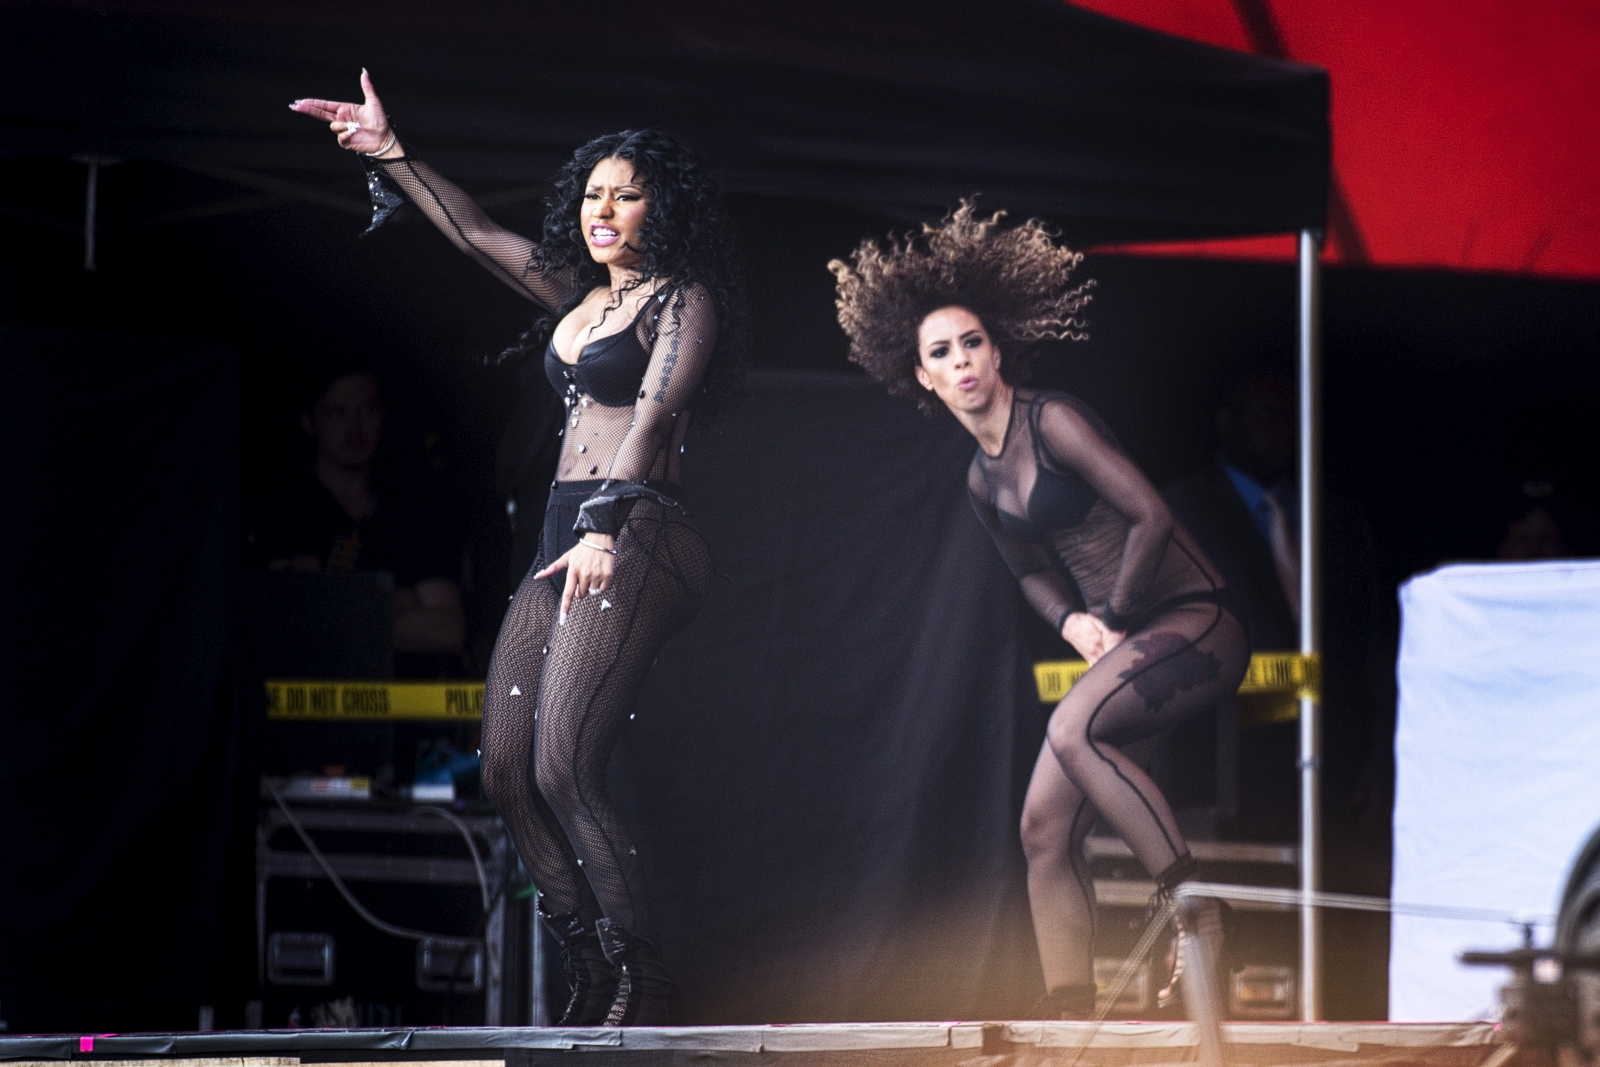 Nicki Minaj performing in Denmark